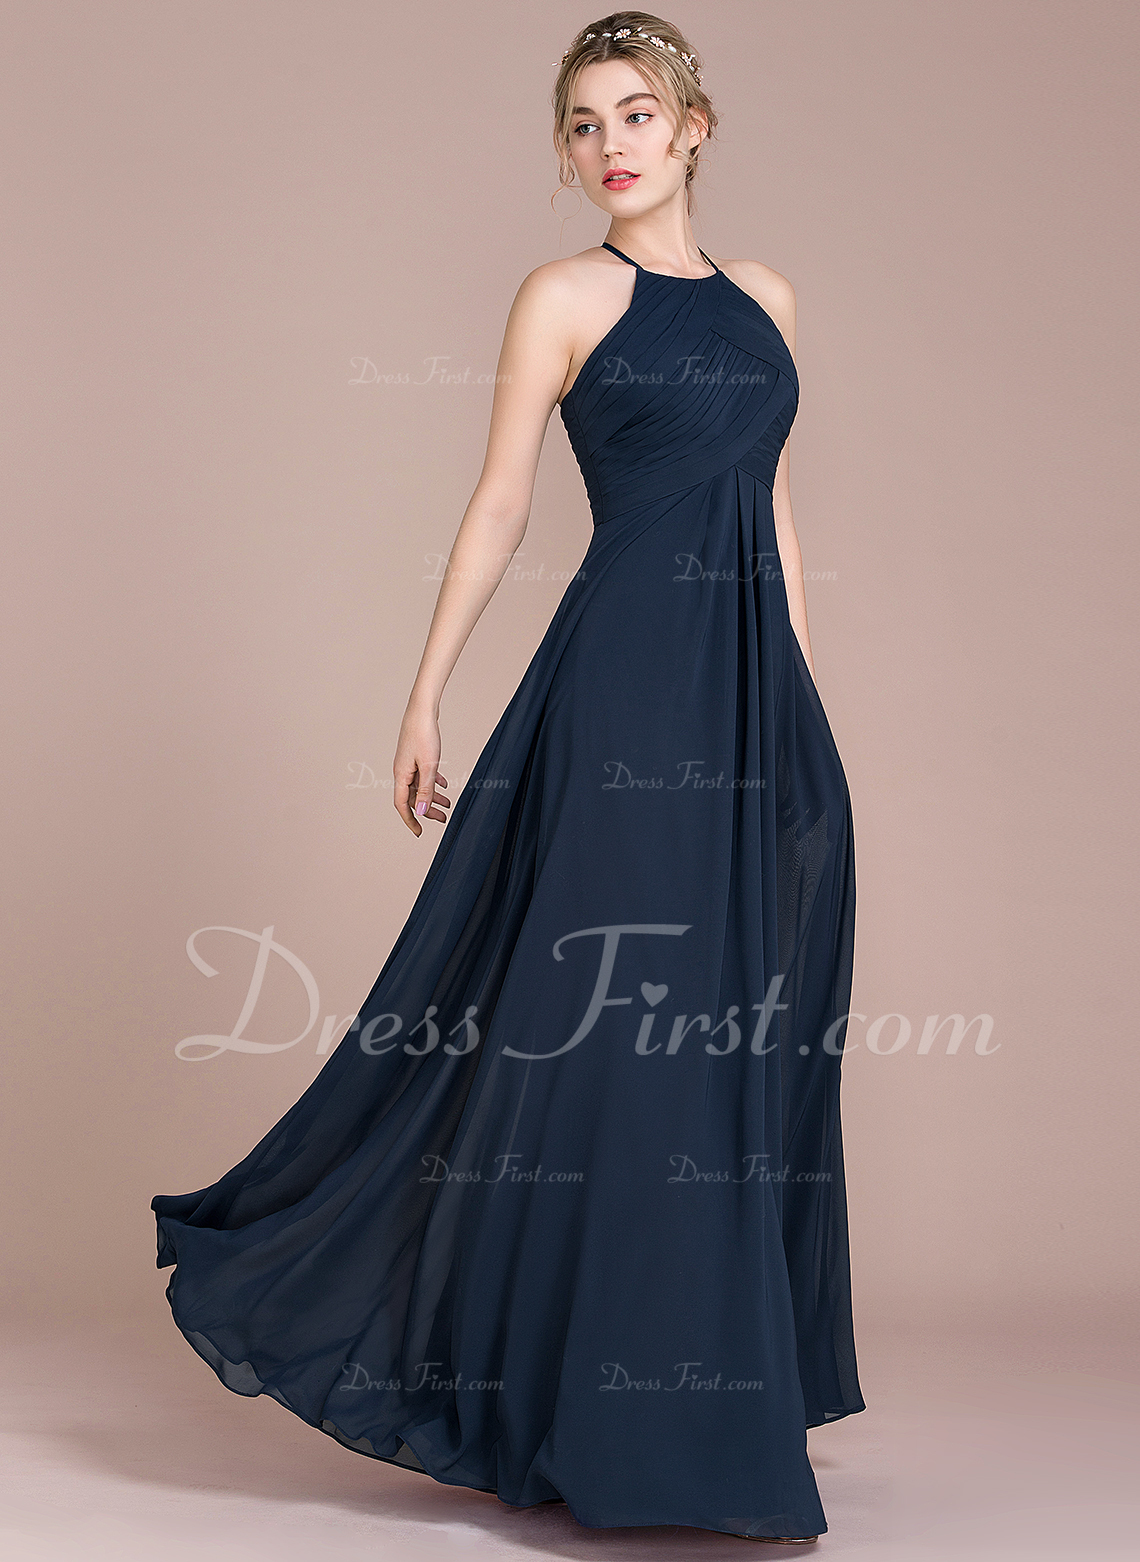 2a3c44eda8 A-Line/Princess Scoop Neck Floor-Length Chiffon Bridesmaid Dress With  Ruffle #105573. Bridesmaid Dresses